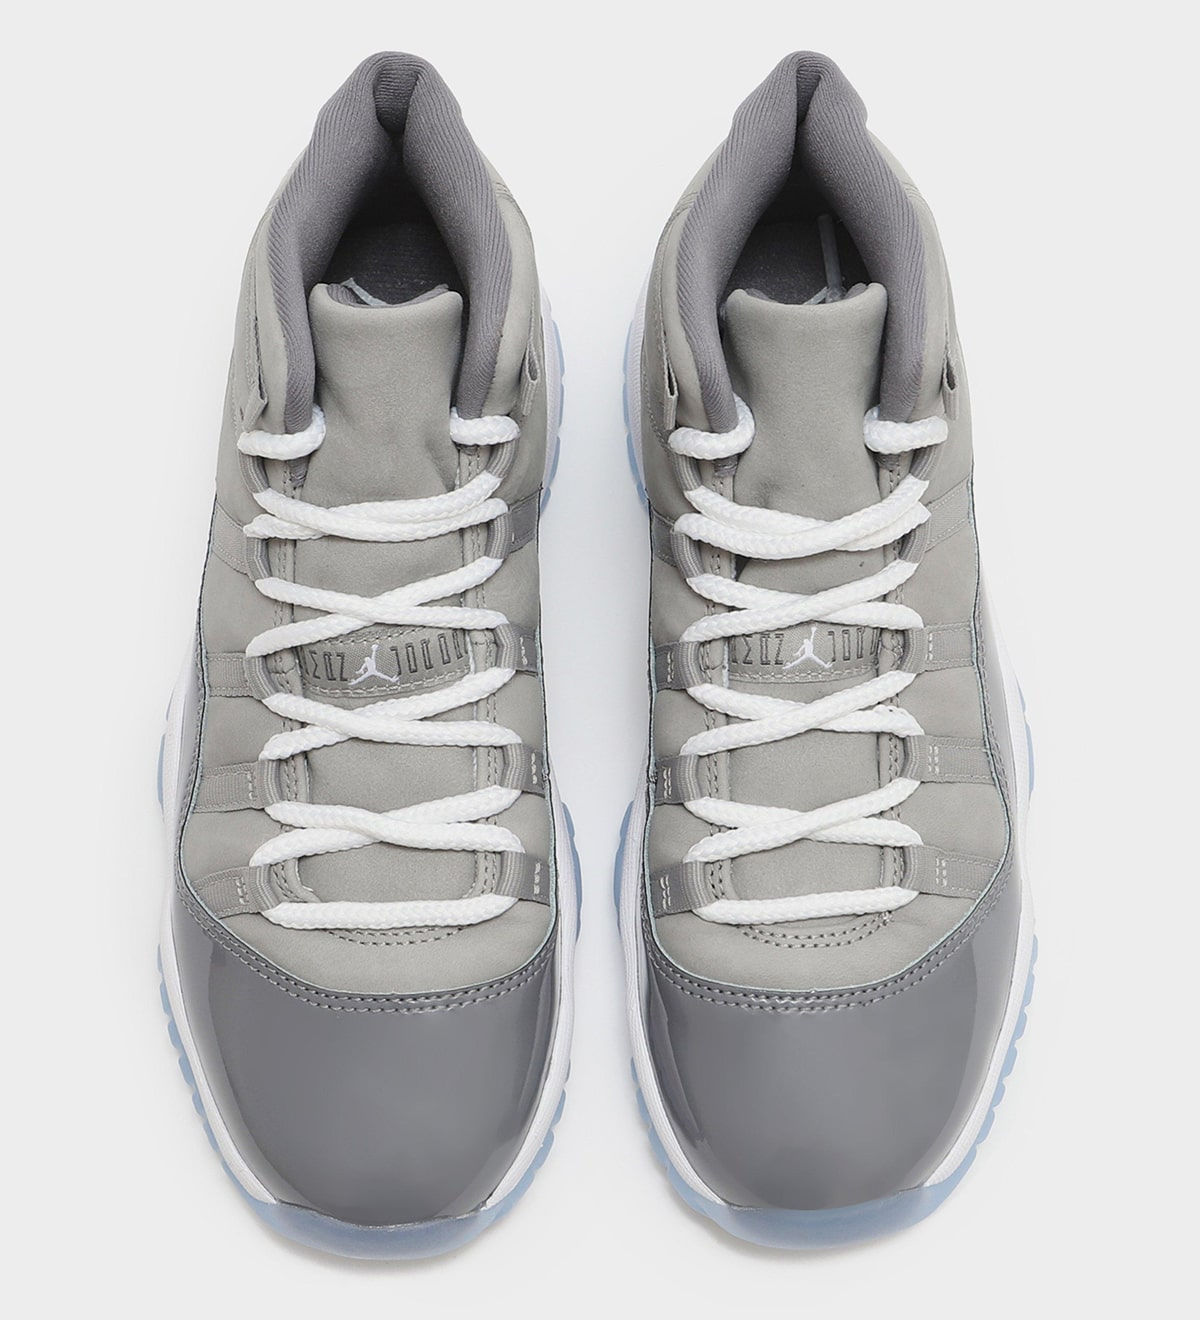 real nike white air force 2 women shoes GS 2021 Release Info Price